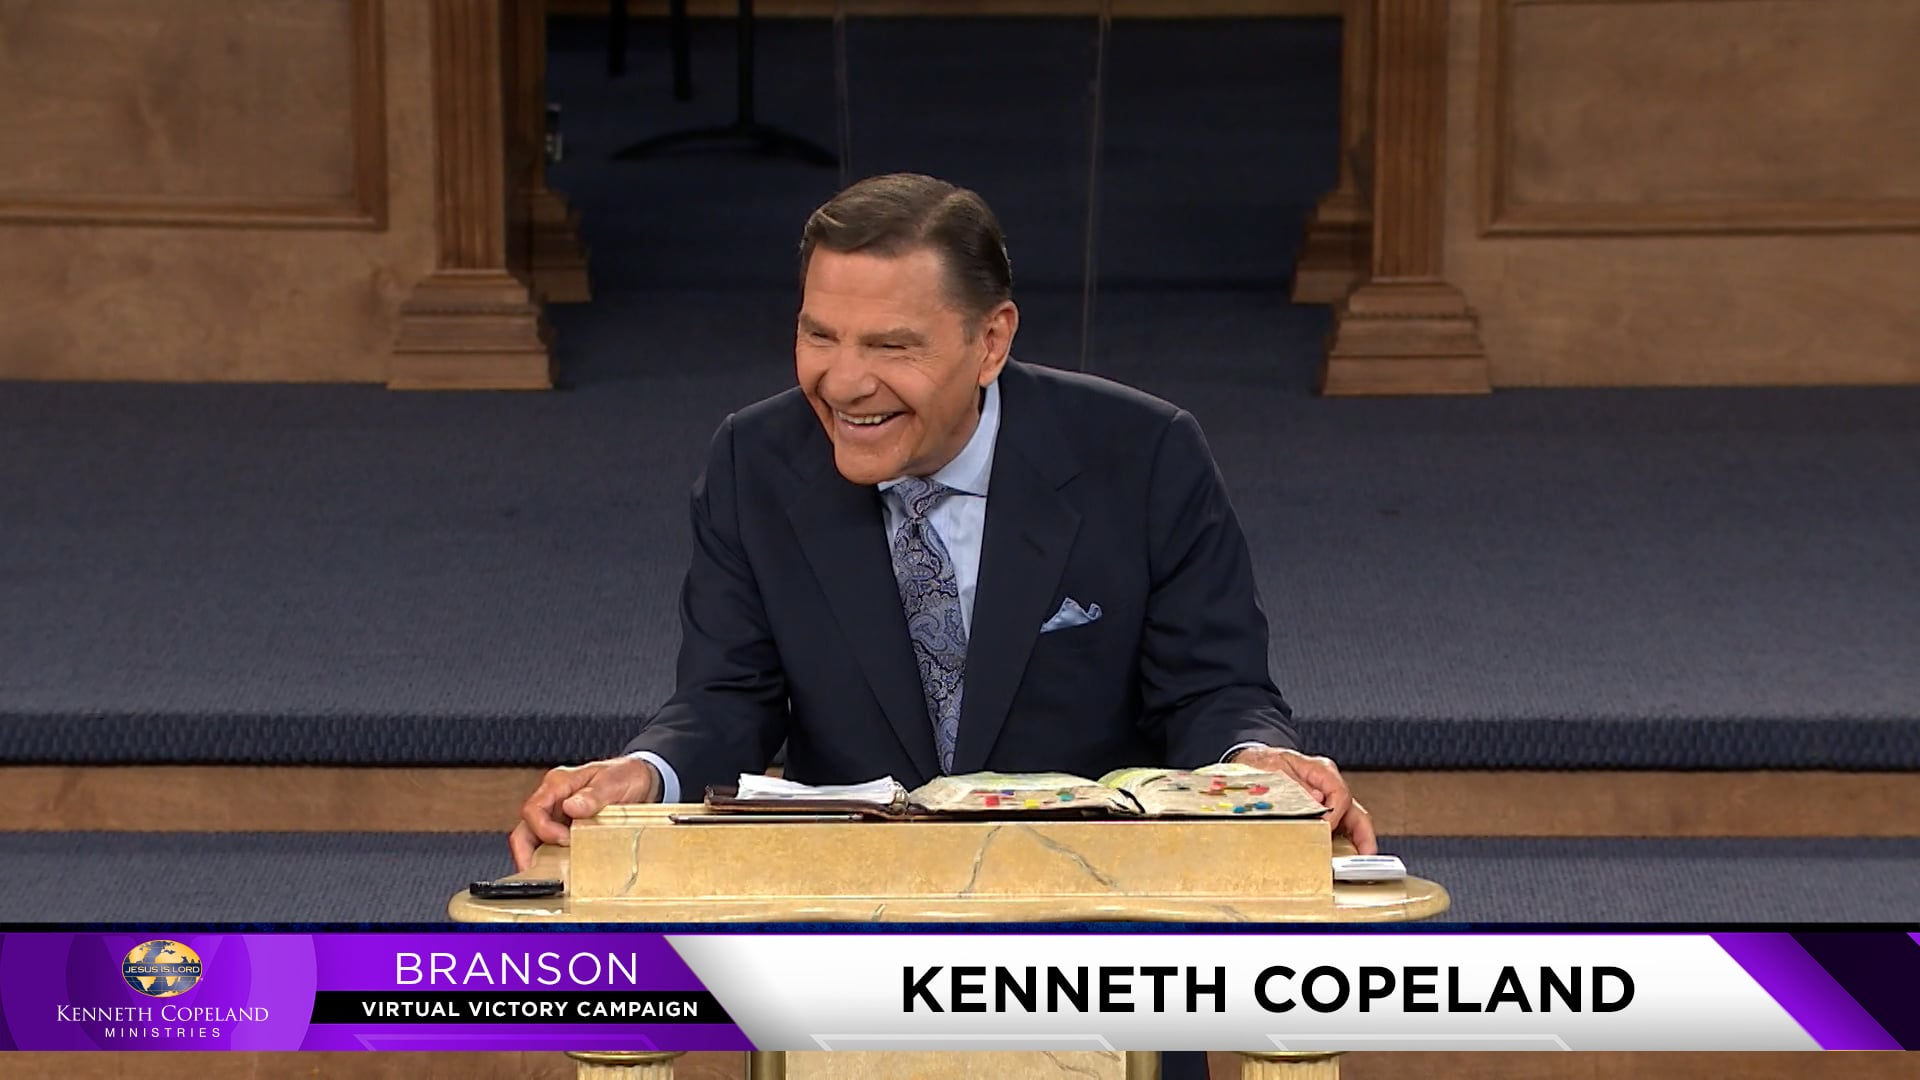 """At the 2021 Branson Virtual Victory Campaign, Kenneth Copeland reviews various laws of the kingdom of God and how they apply to daily living.  """"Seek ye first the kingdom of God…"""" (Matt. 6:33) Put first things first, that is, what He says should be first. Then you will truly have a life worth living!"""